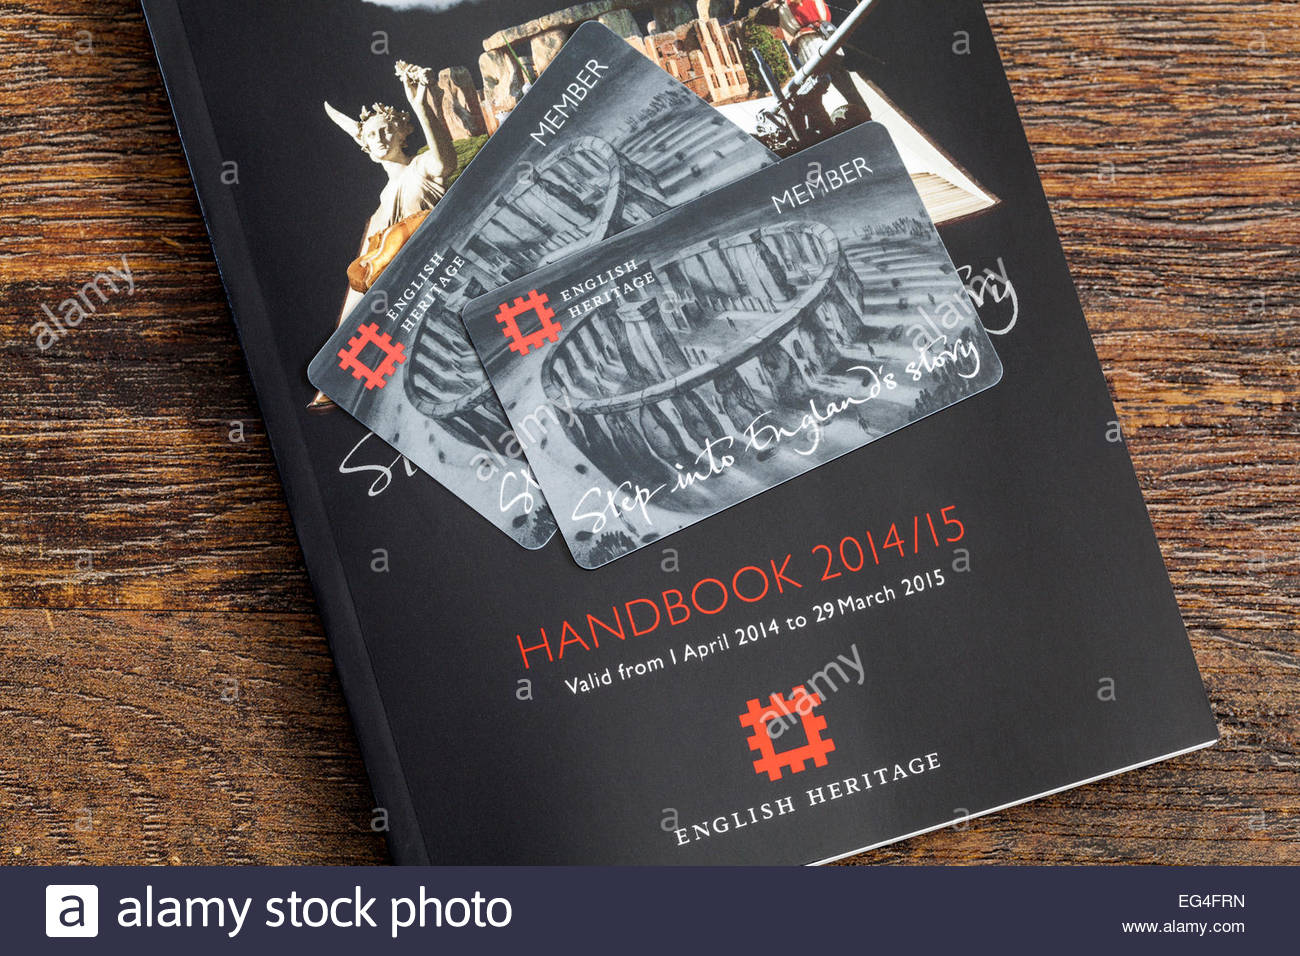 English heritage handbook and membership cards - FOR EDITORIAL USE - Stock Image